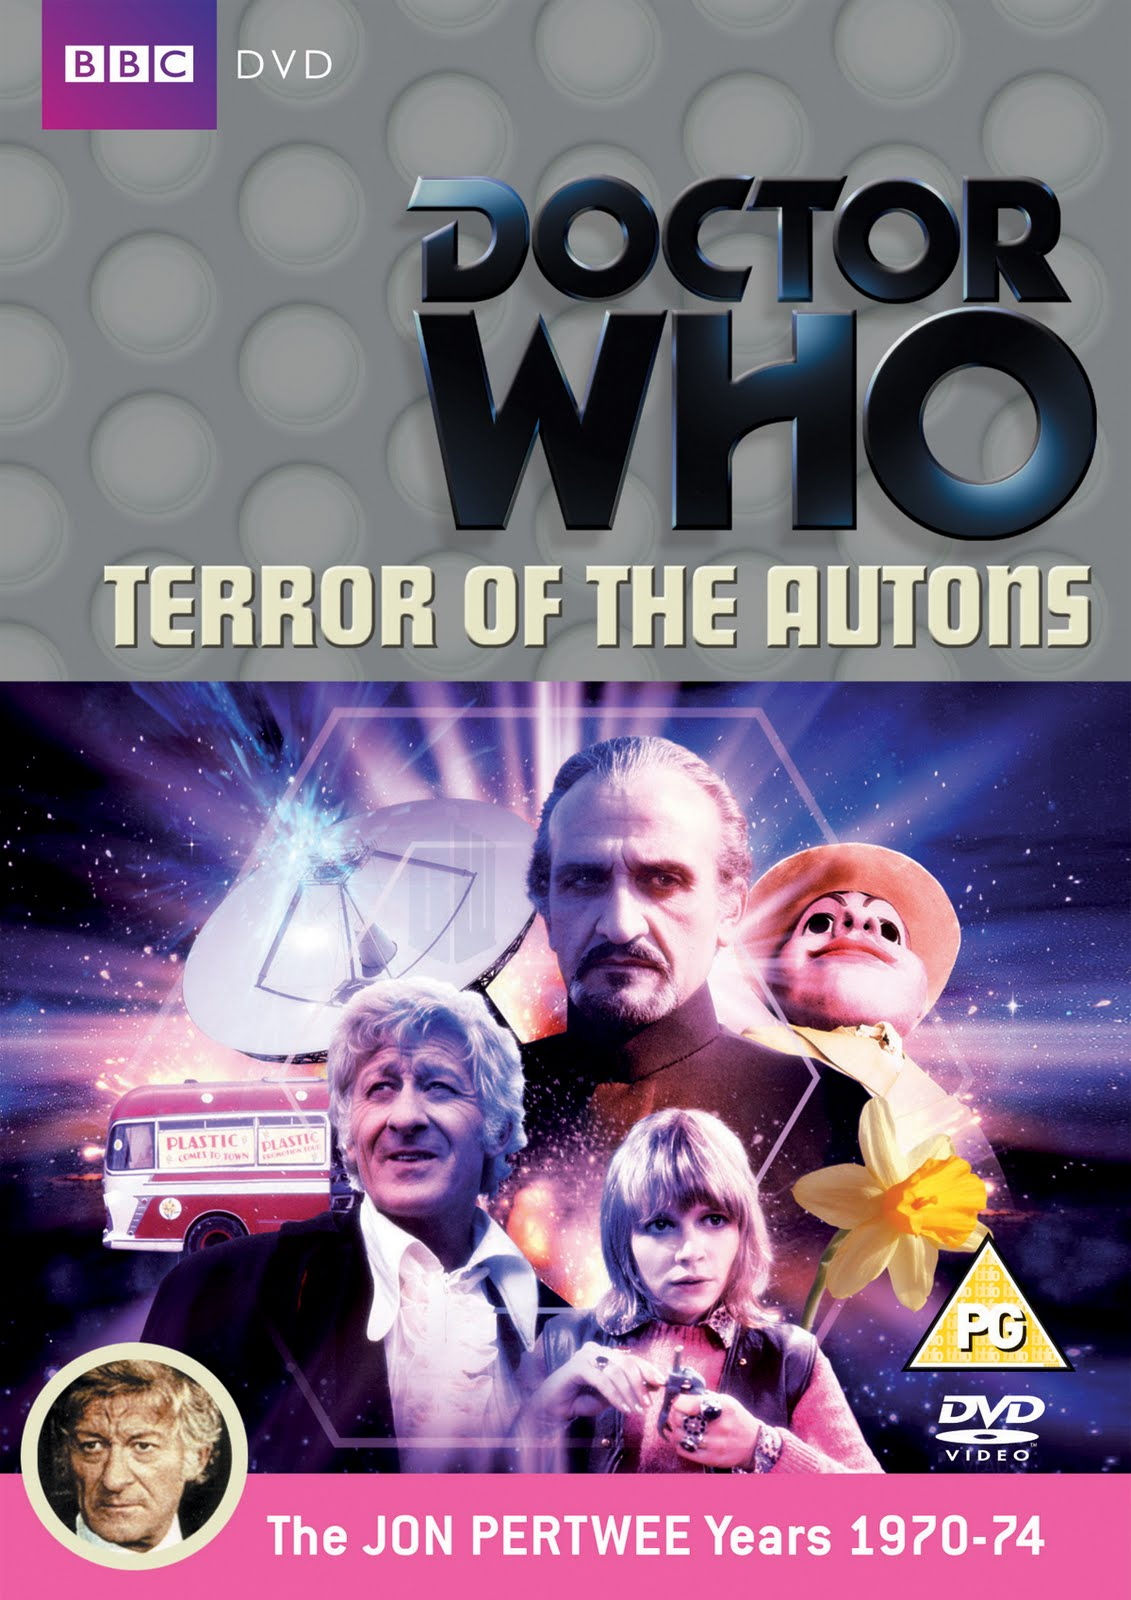 Terror of the Autons - Wikipedia